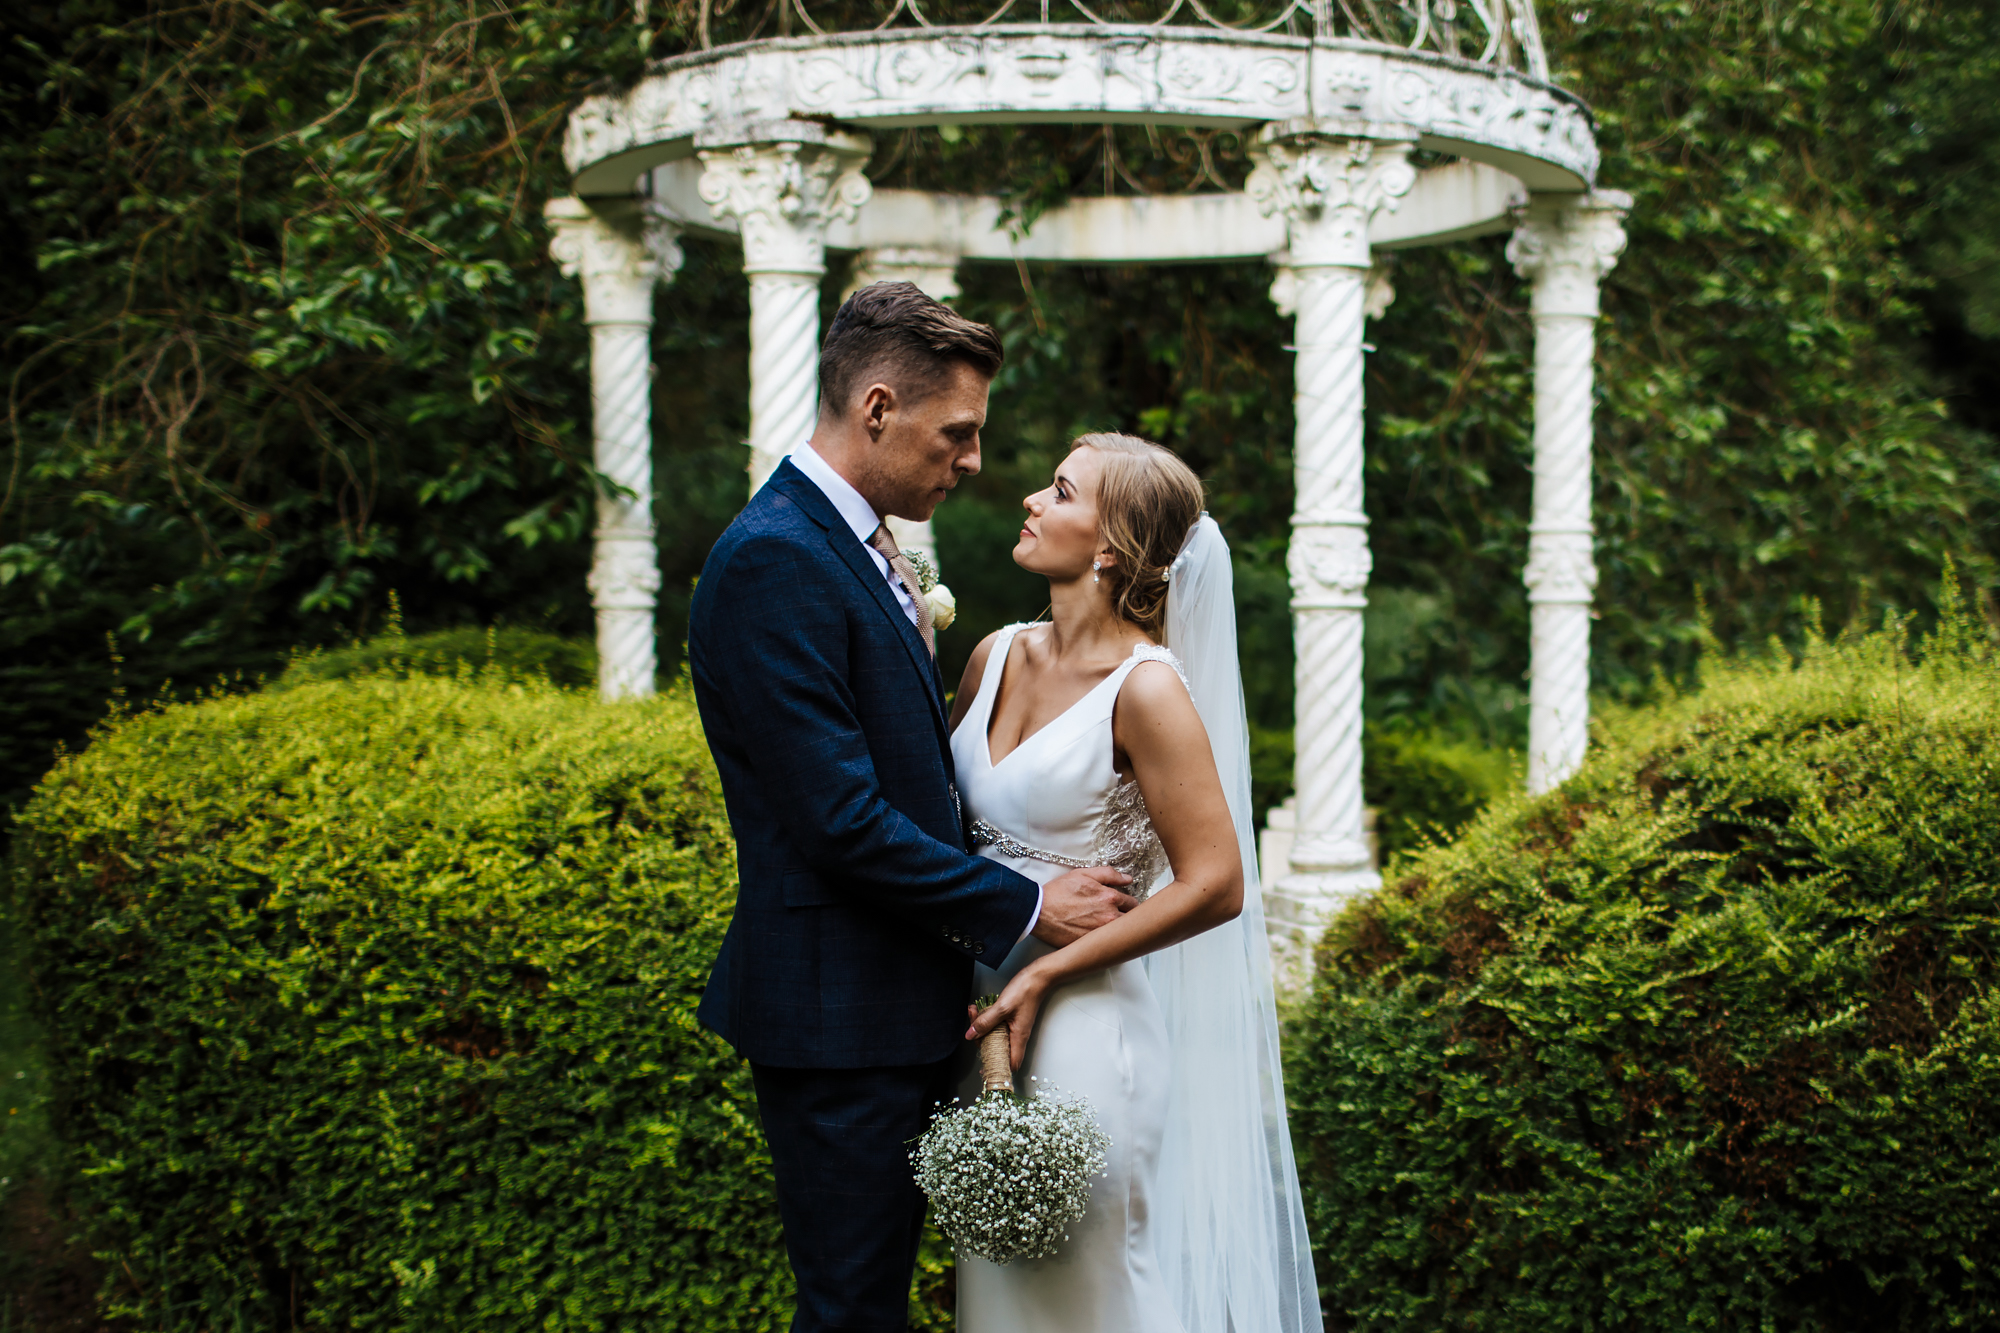 Couple portrait at a Shropshire wedding